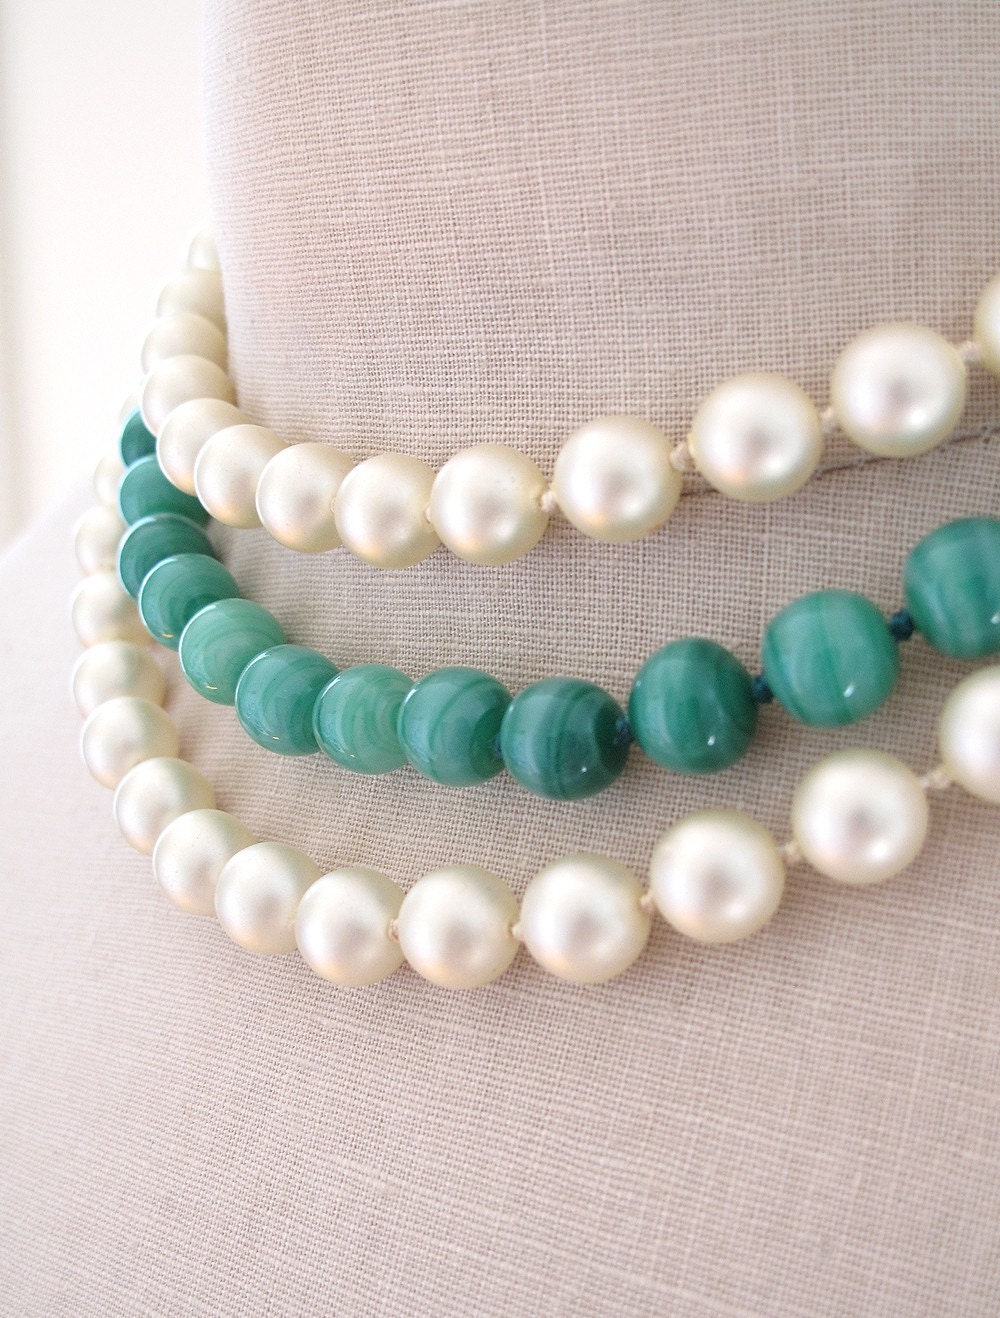 This beautiful three strand necklace sits close to the neck. It is made of two strands of pearls and one strand of green glass beads that resemble Jade. The most beautiful feature of this necklace is the ornate gold clasp with a green bead set in the center. The clasp is 1.25